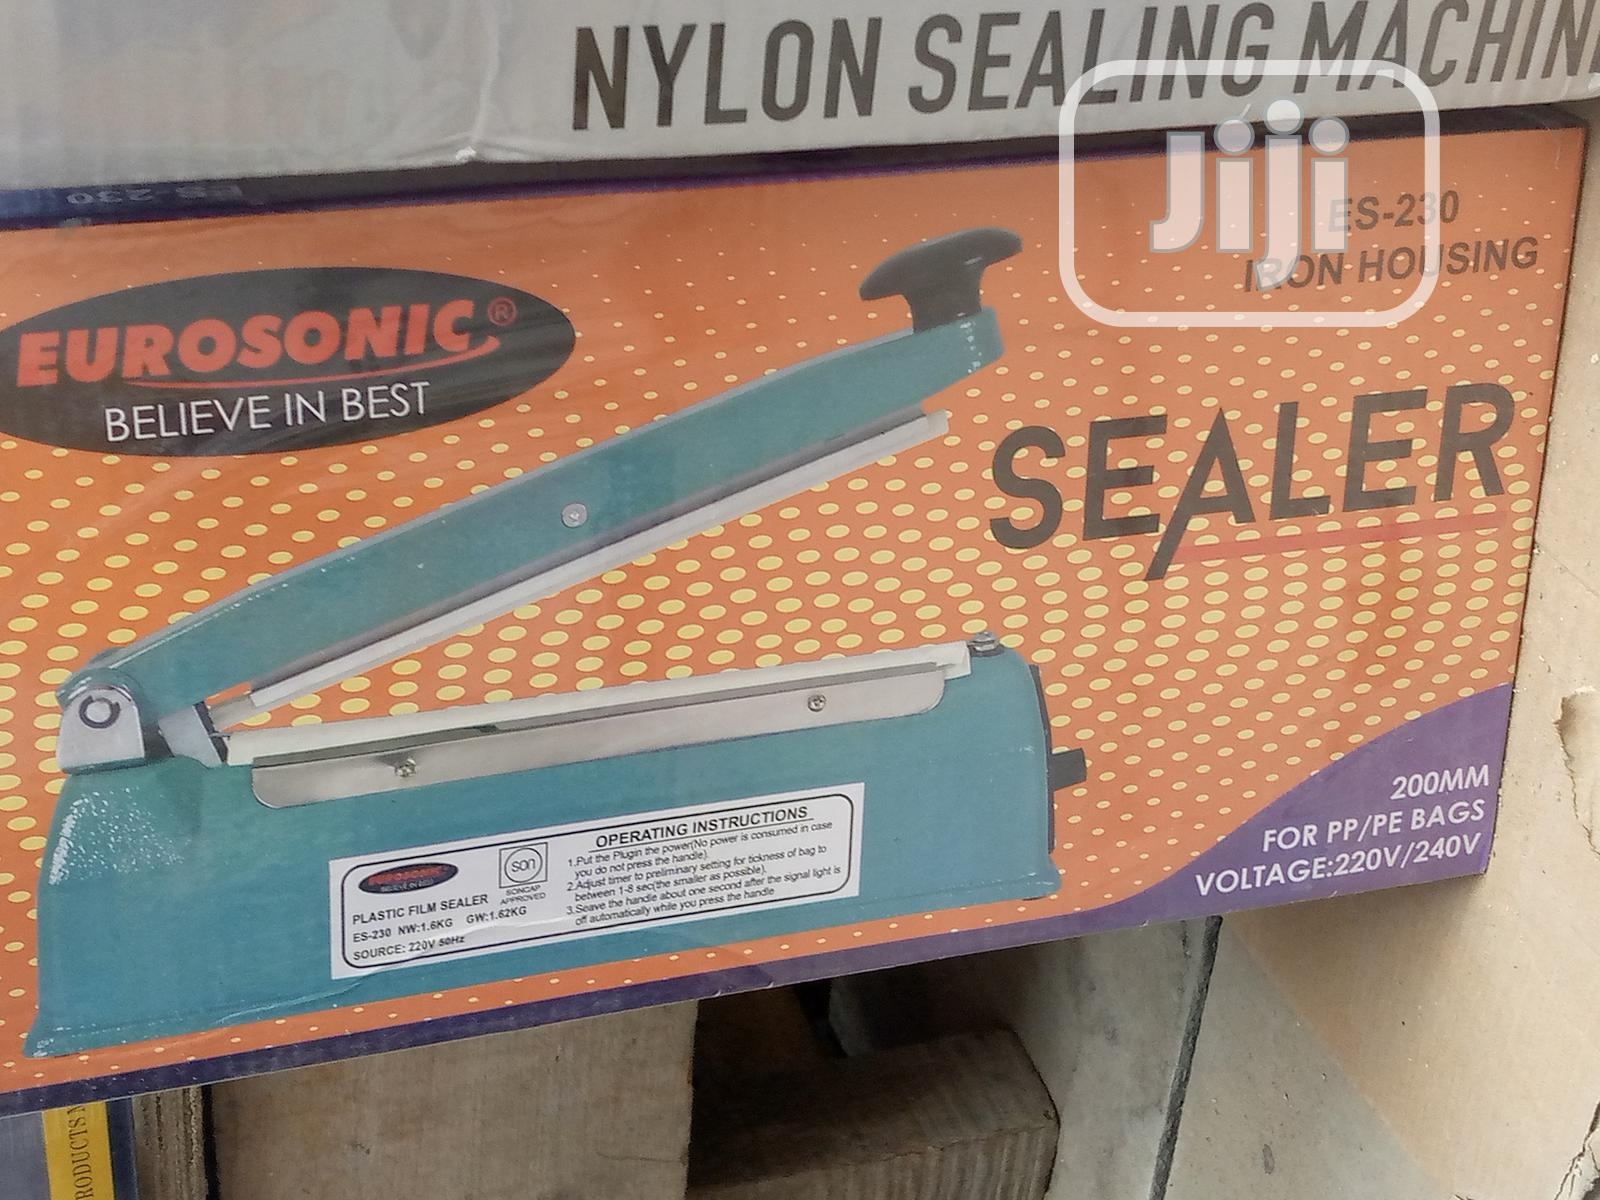 Eurosonic Sealing Machine